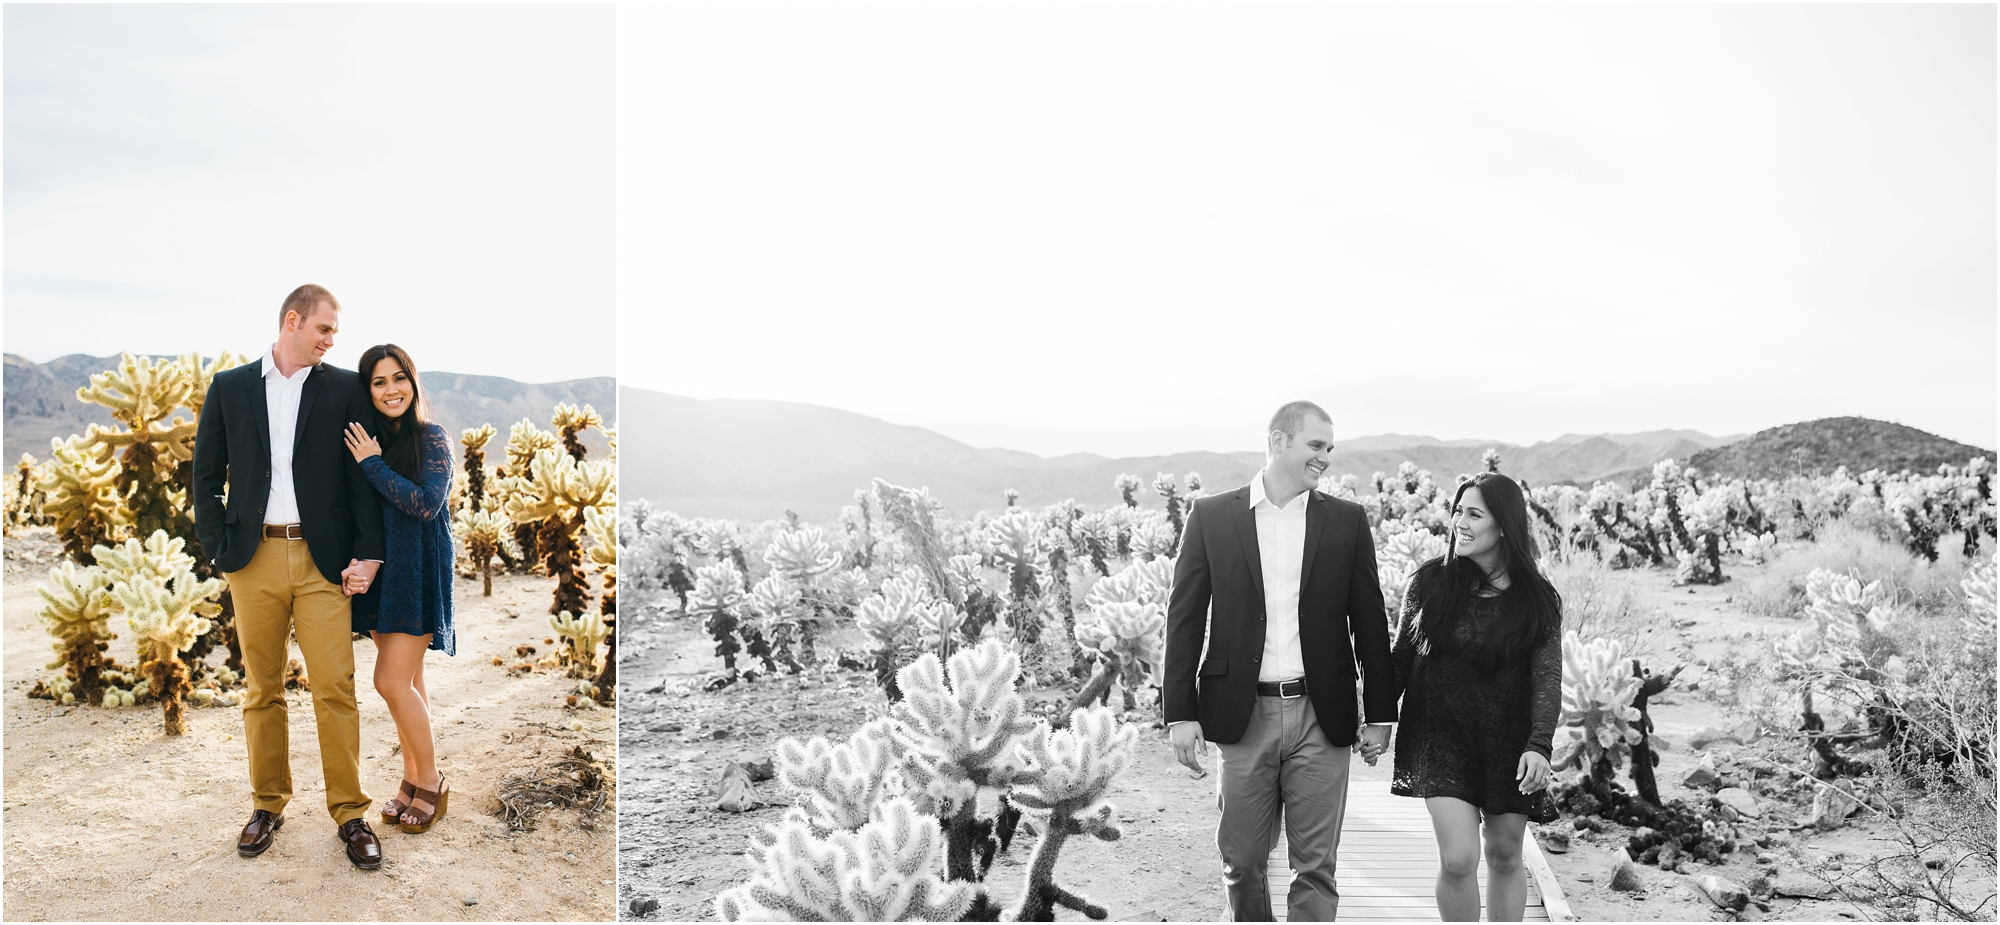 Joshua Tree Engagement Photography - http://brittneyhannonphotography.com